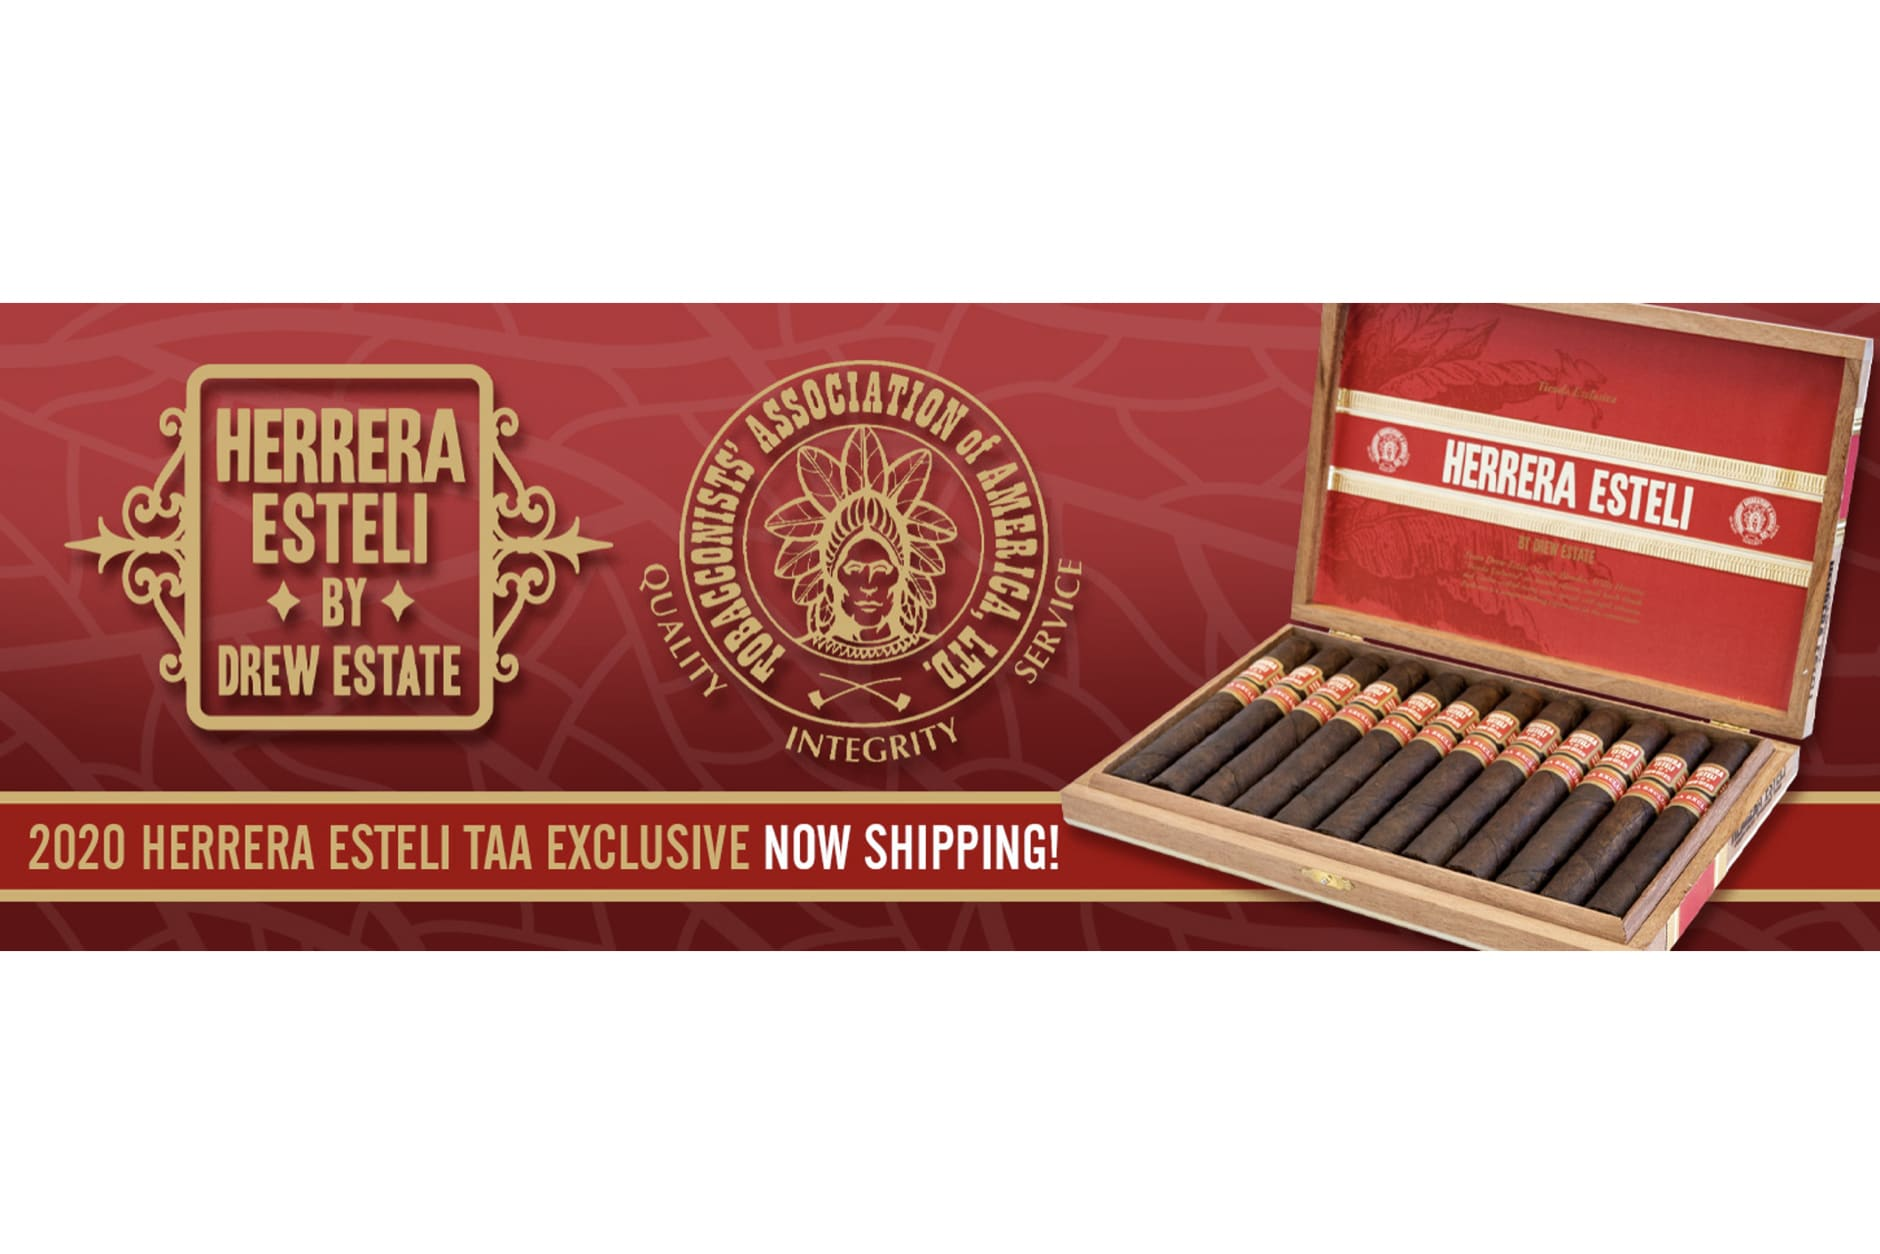 Drew Estate Begins Shipping Herrera Estelí TAA Exclusive 2020 Featured Image